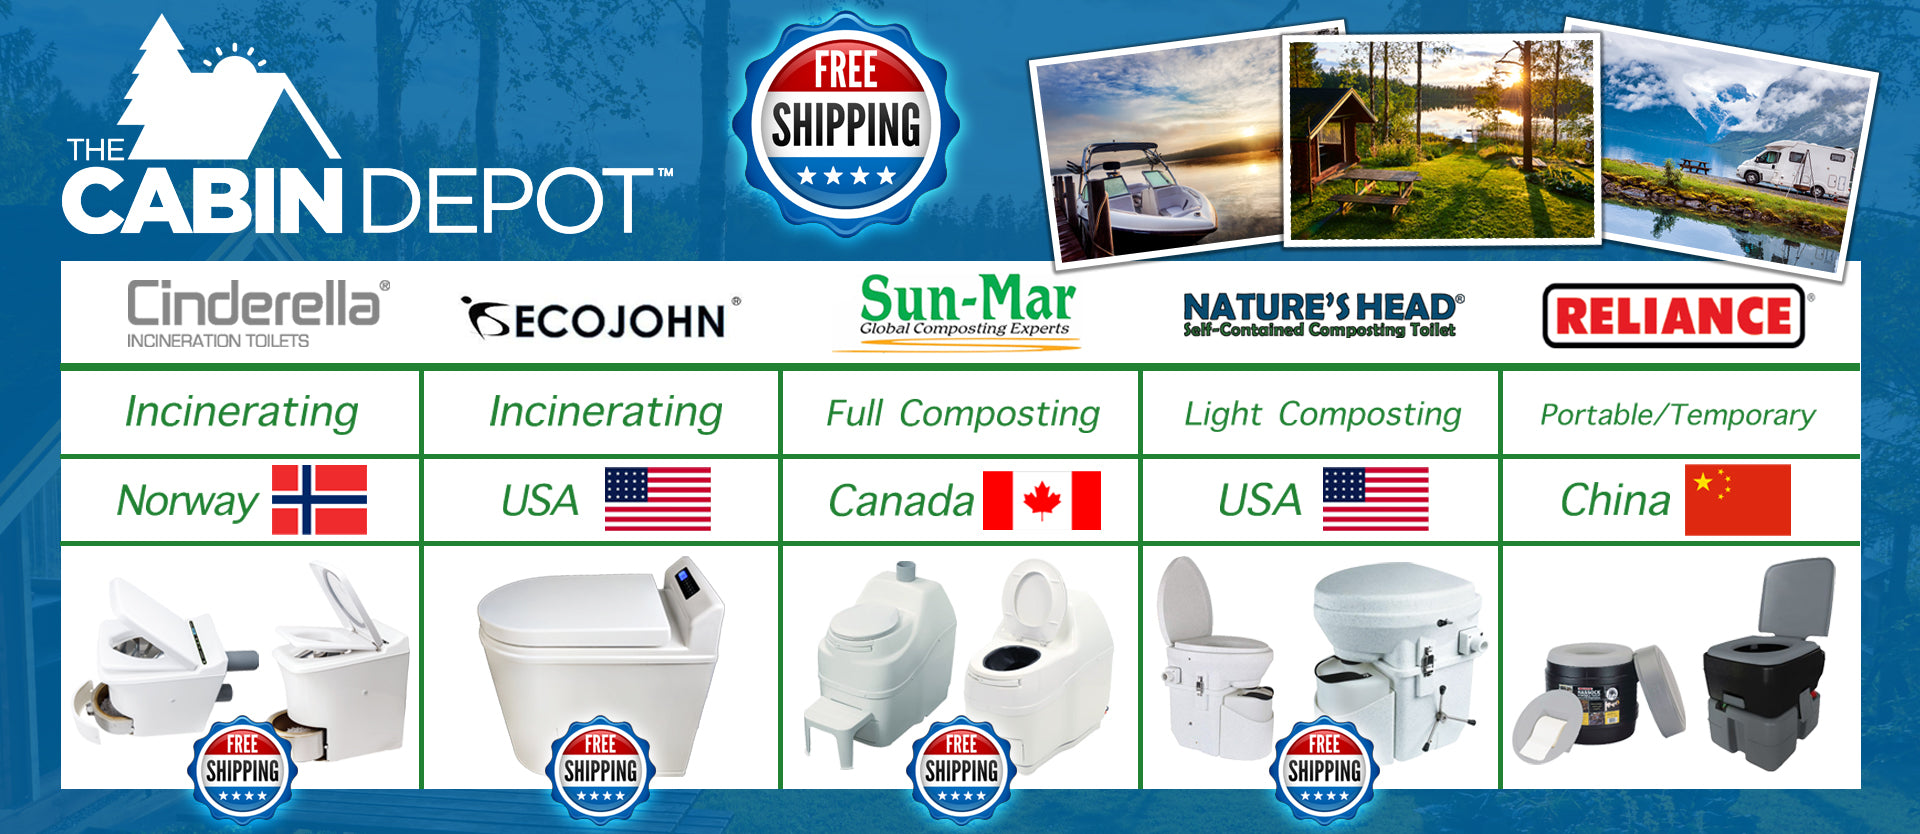 Composting Incinerating and Urine Diverting Natures Head Cinderella EcoJohn Toilets USA by The Cabin Depot